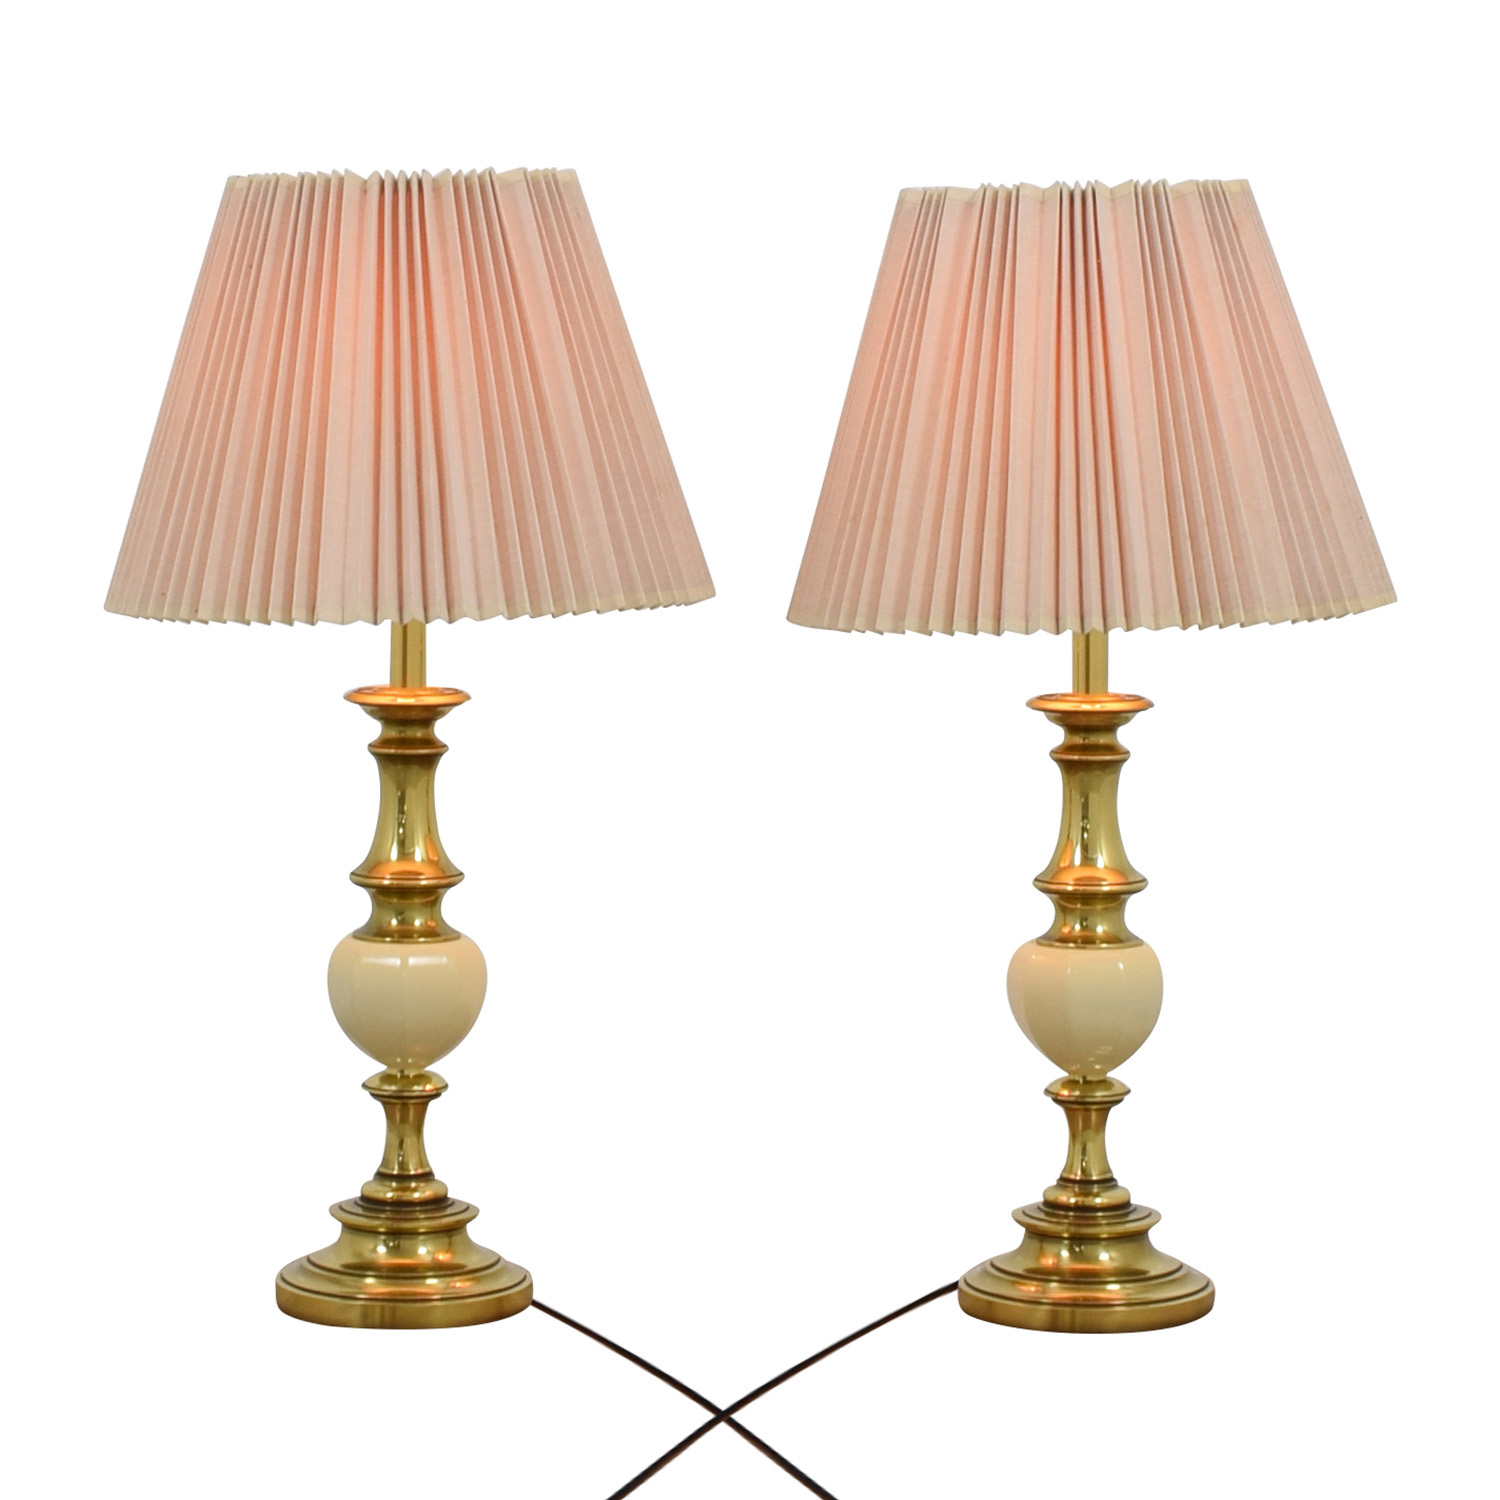 buy Brass and White Urn Table Lamps with Accordion Shades